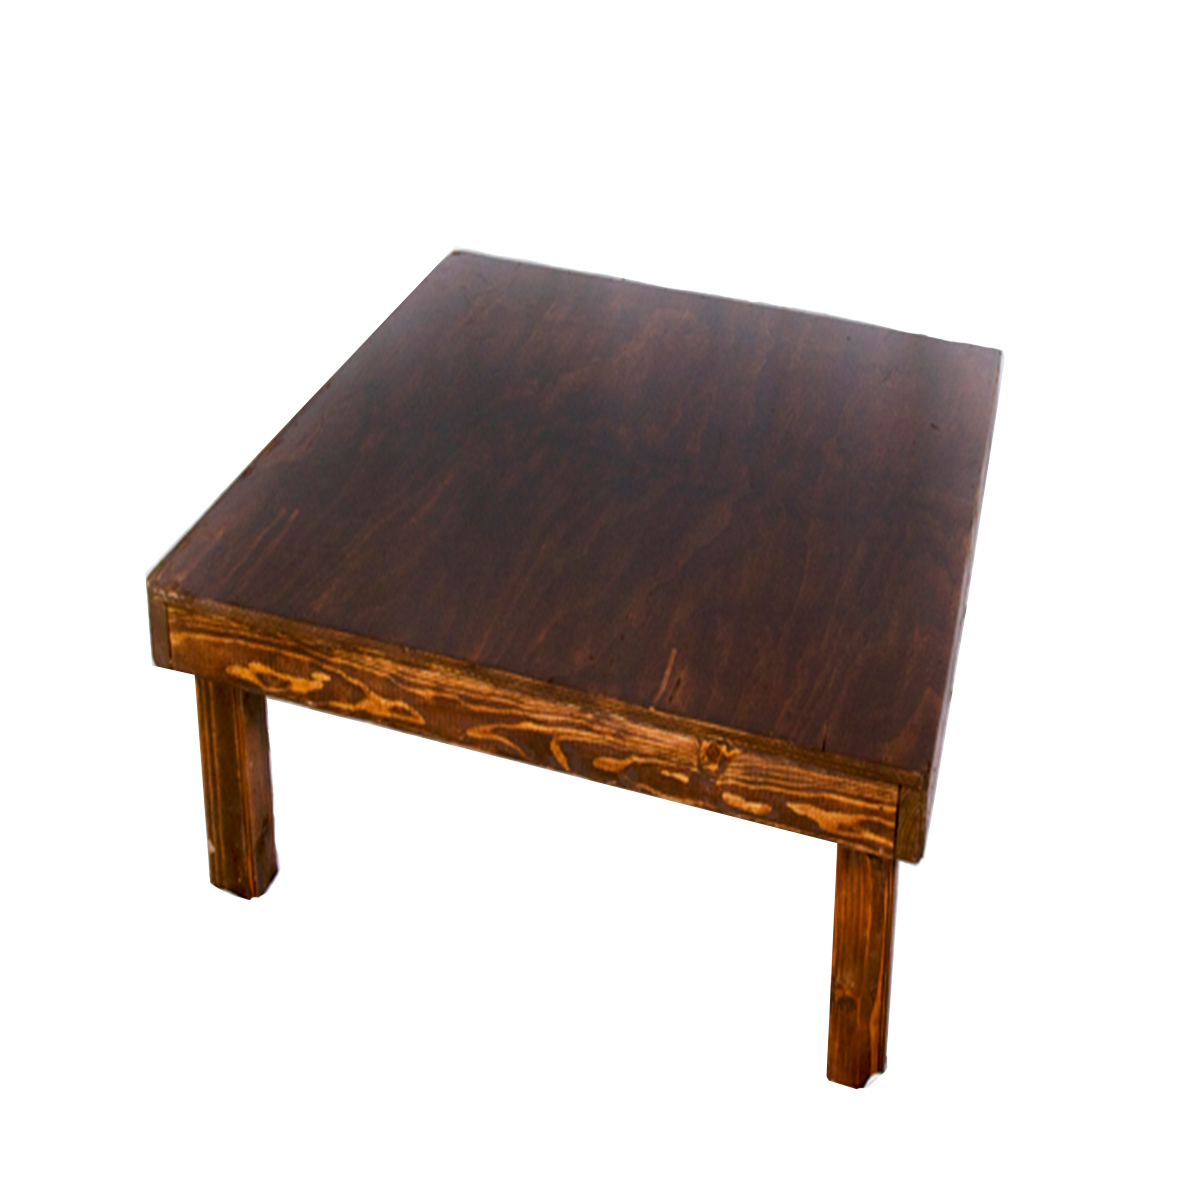 Descanso Table 4ft